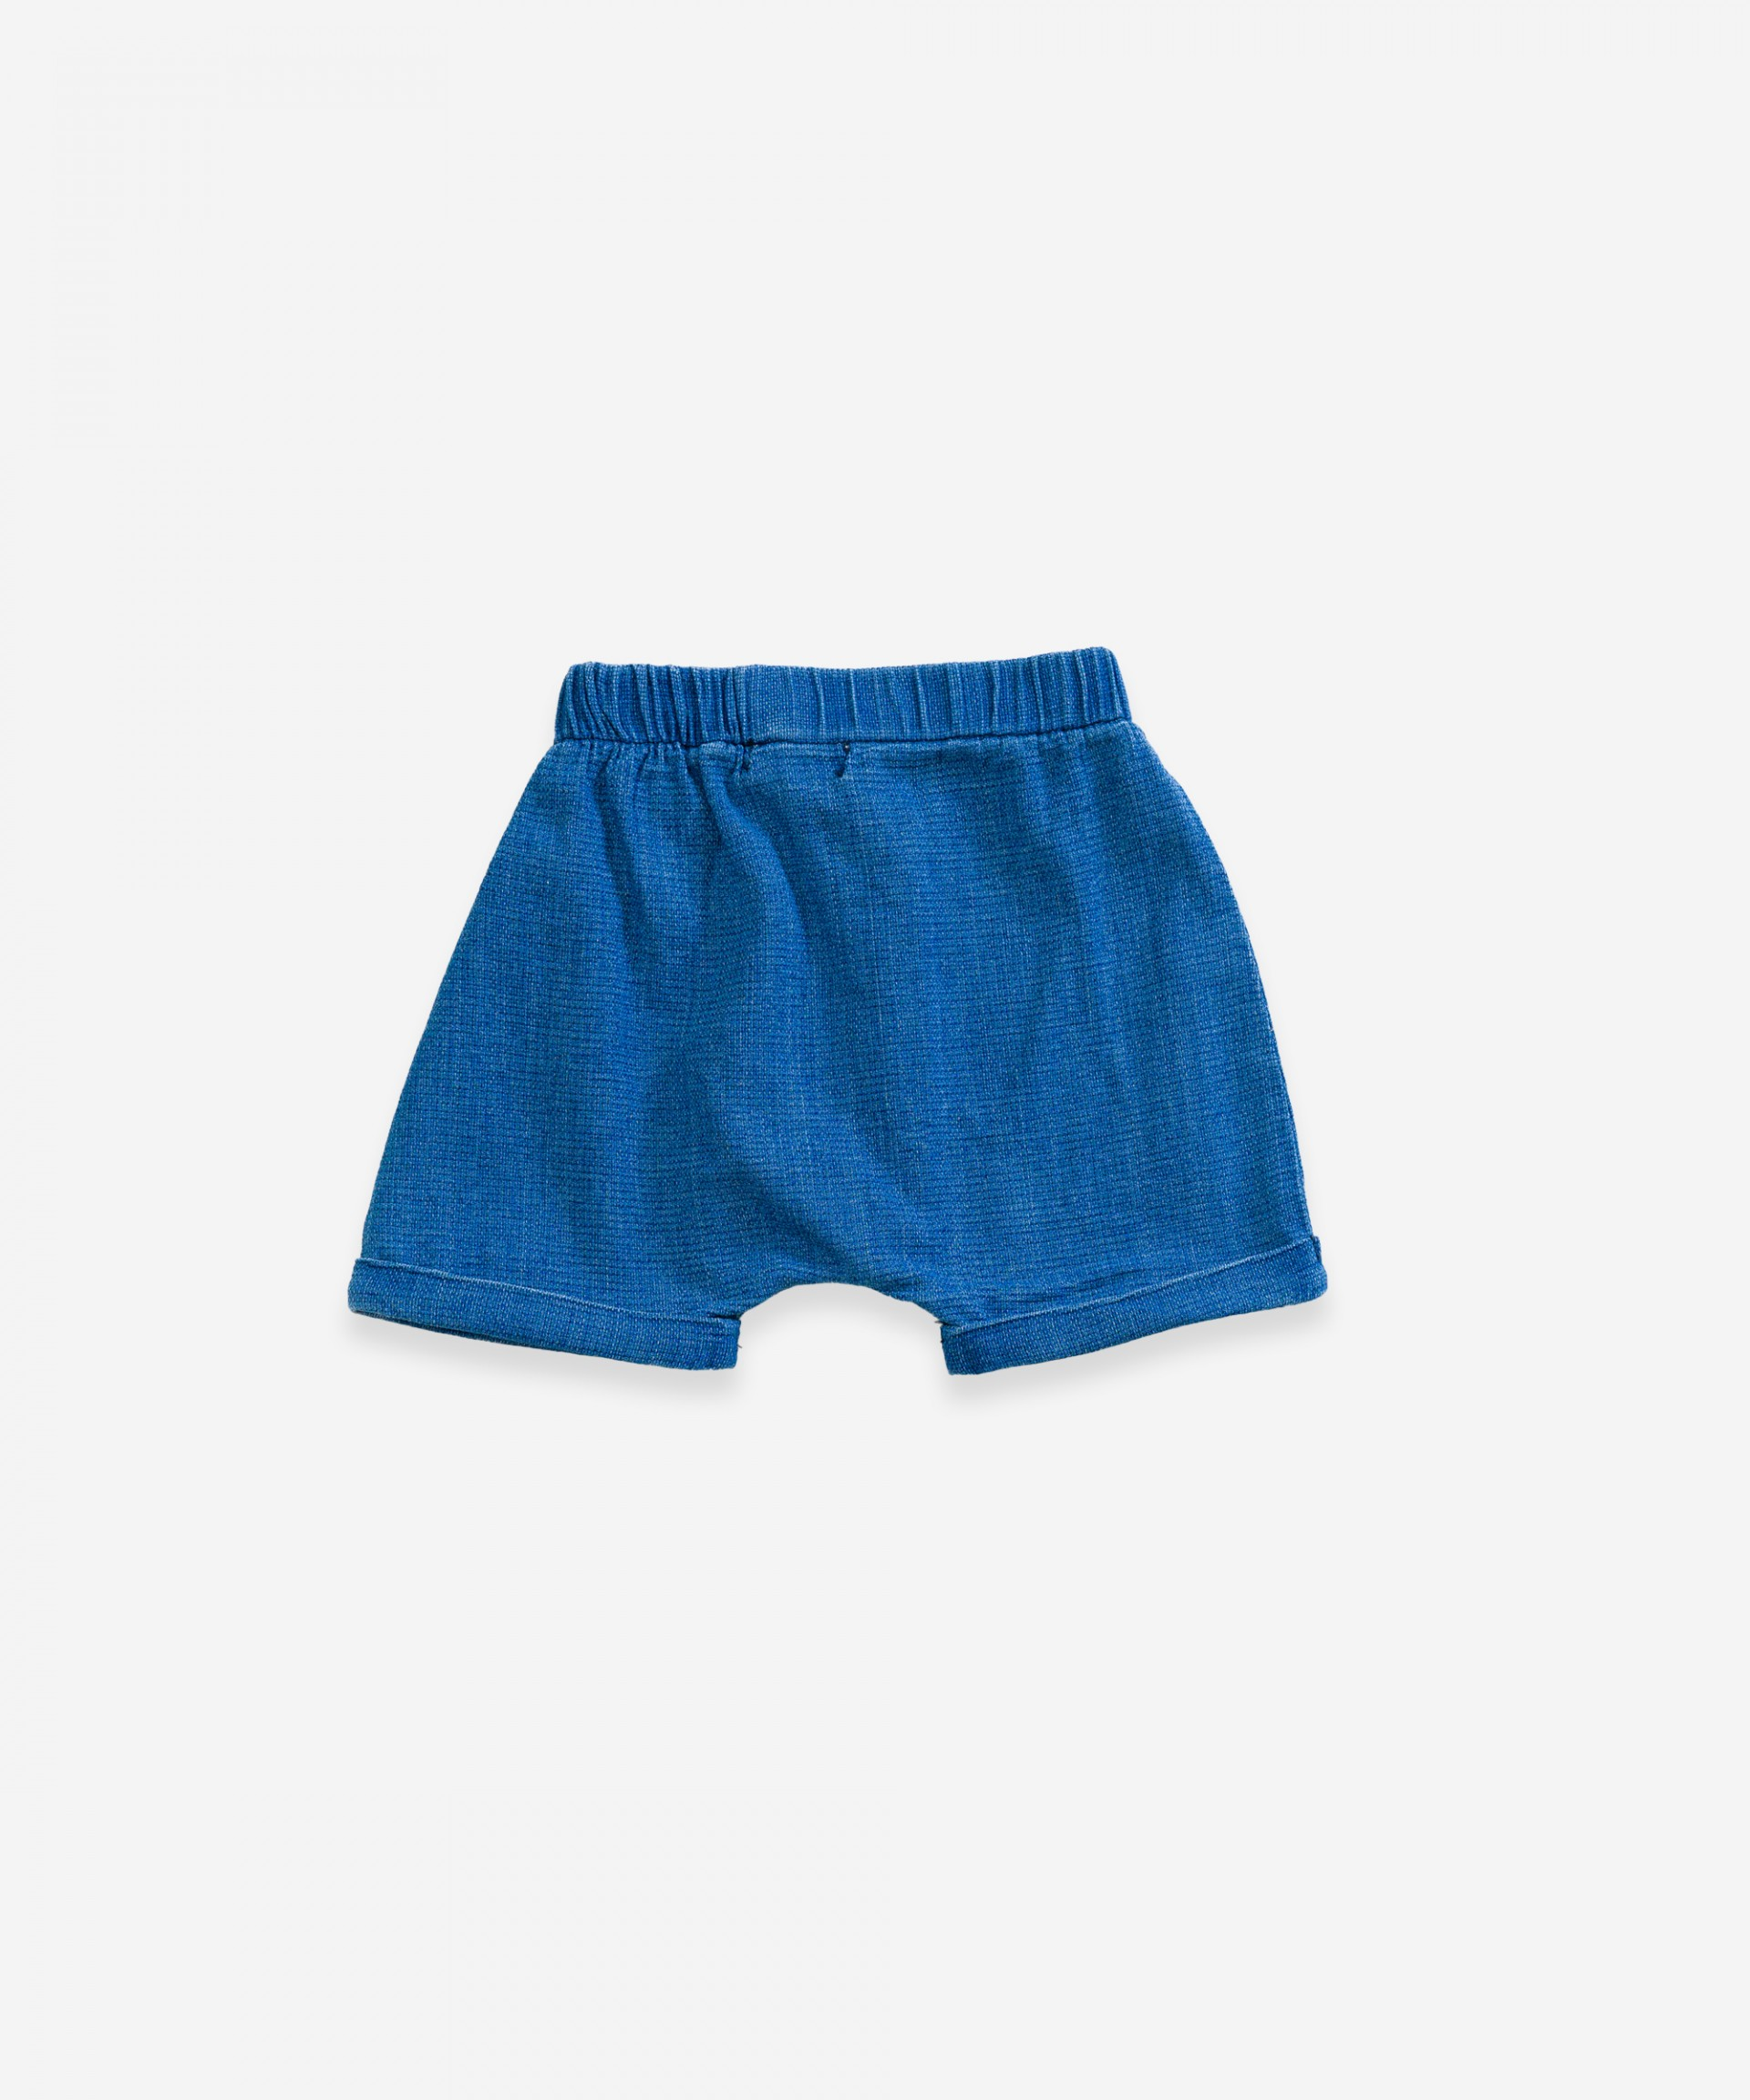 Denim shorts with buttons | Weaving